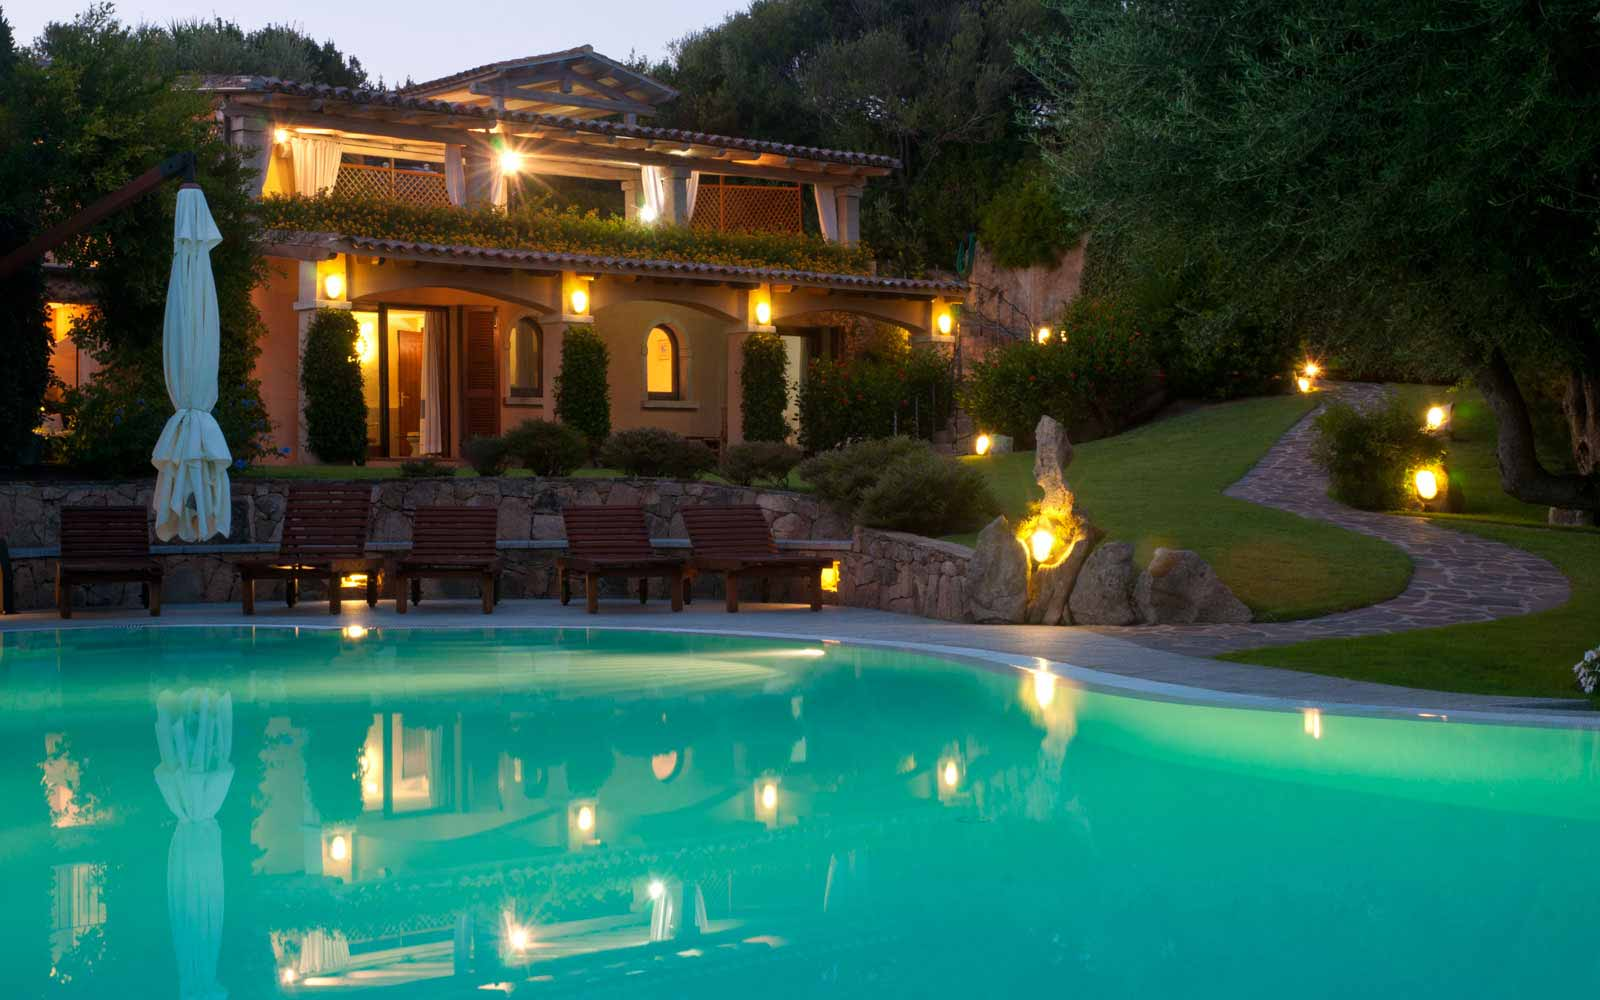 Night-time view of Villa Pedrabianca